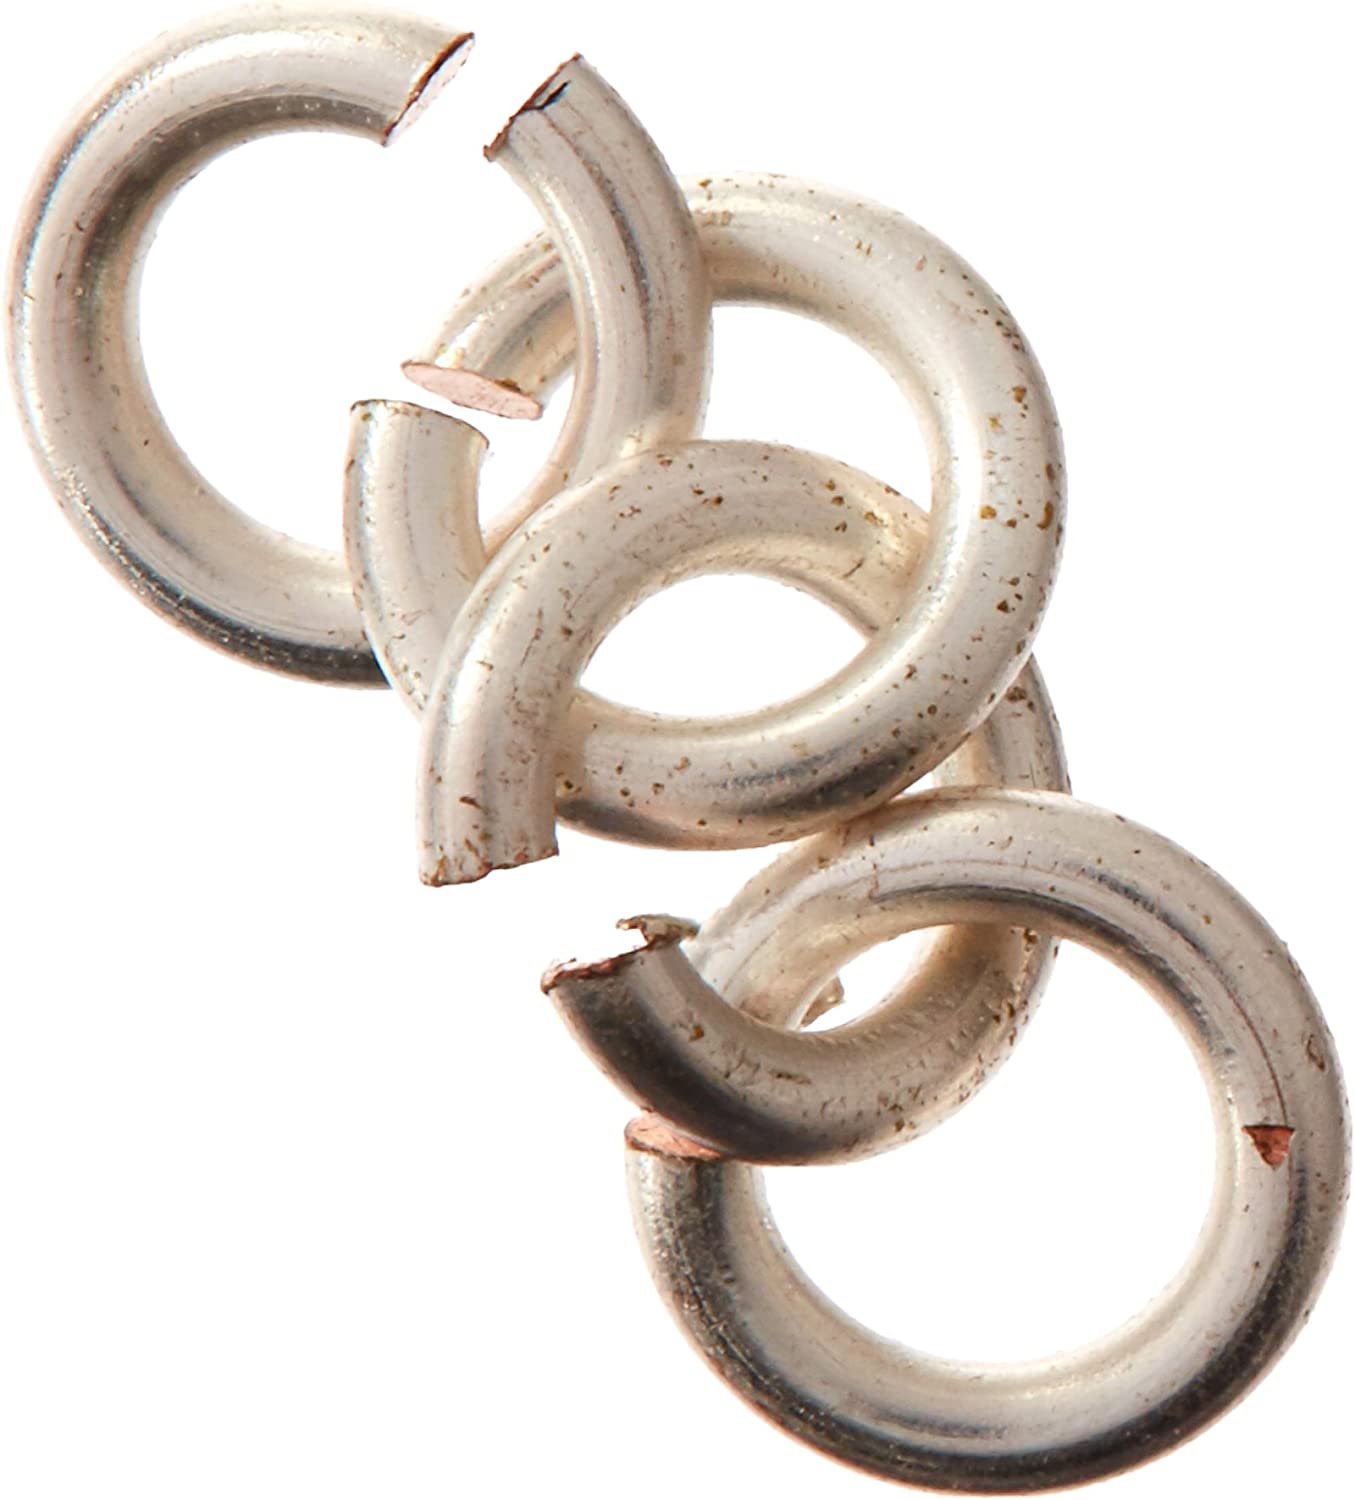 Artistic Wire 18 Gauge Jump Ring Res Free shipping / New Diameter 8-Inch Tarnish 1 Recommendation